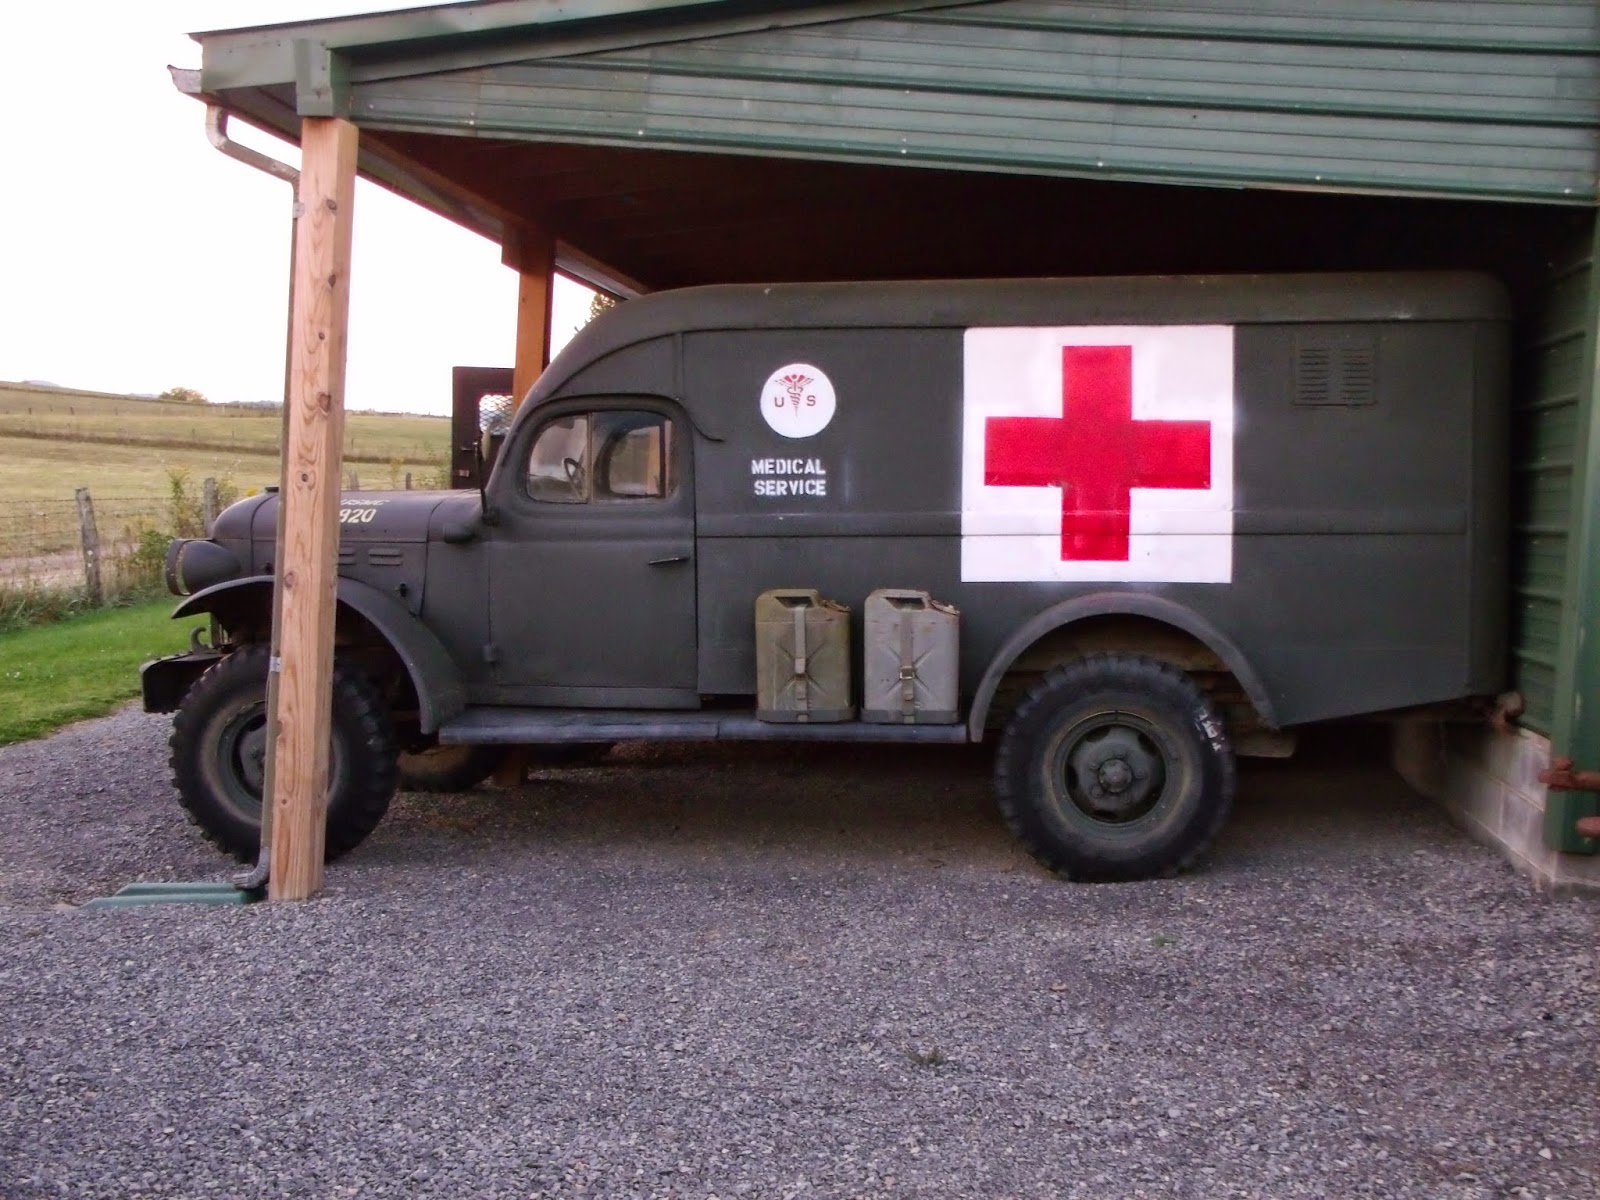 An old military ambulance on display outside.